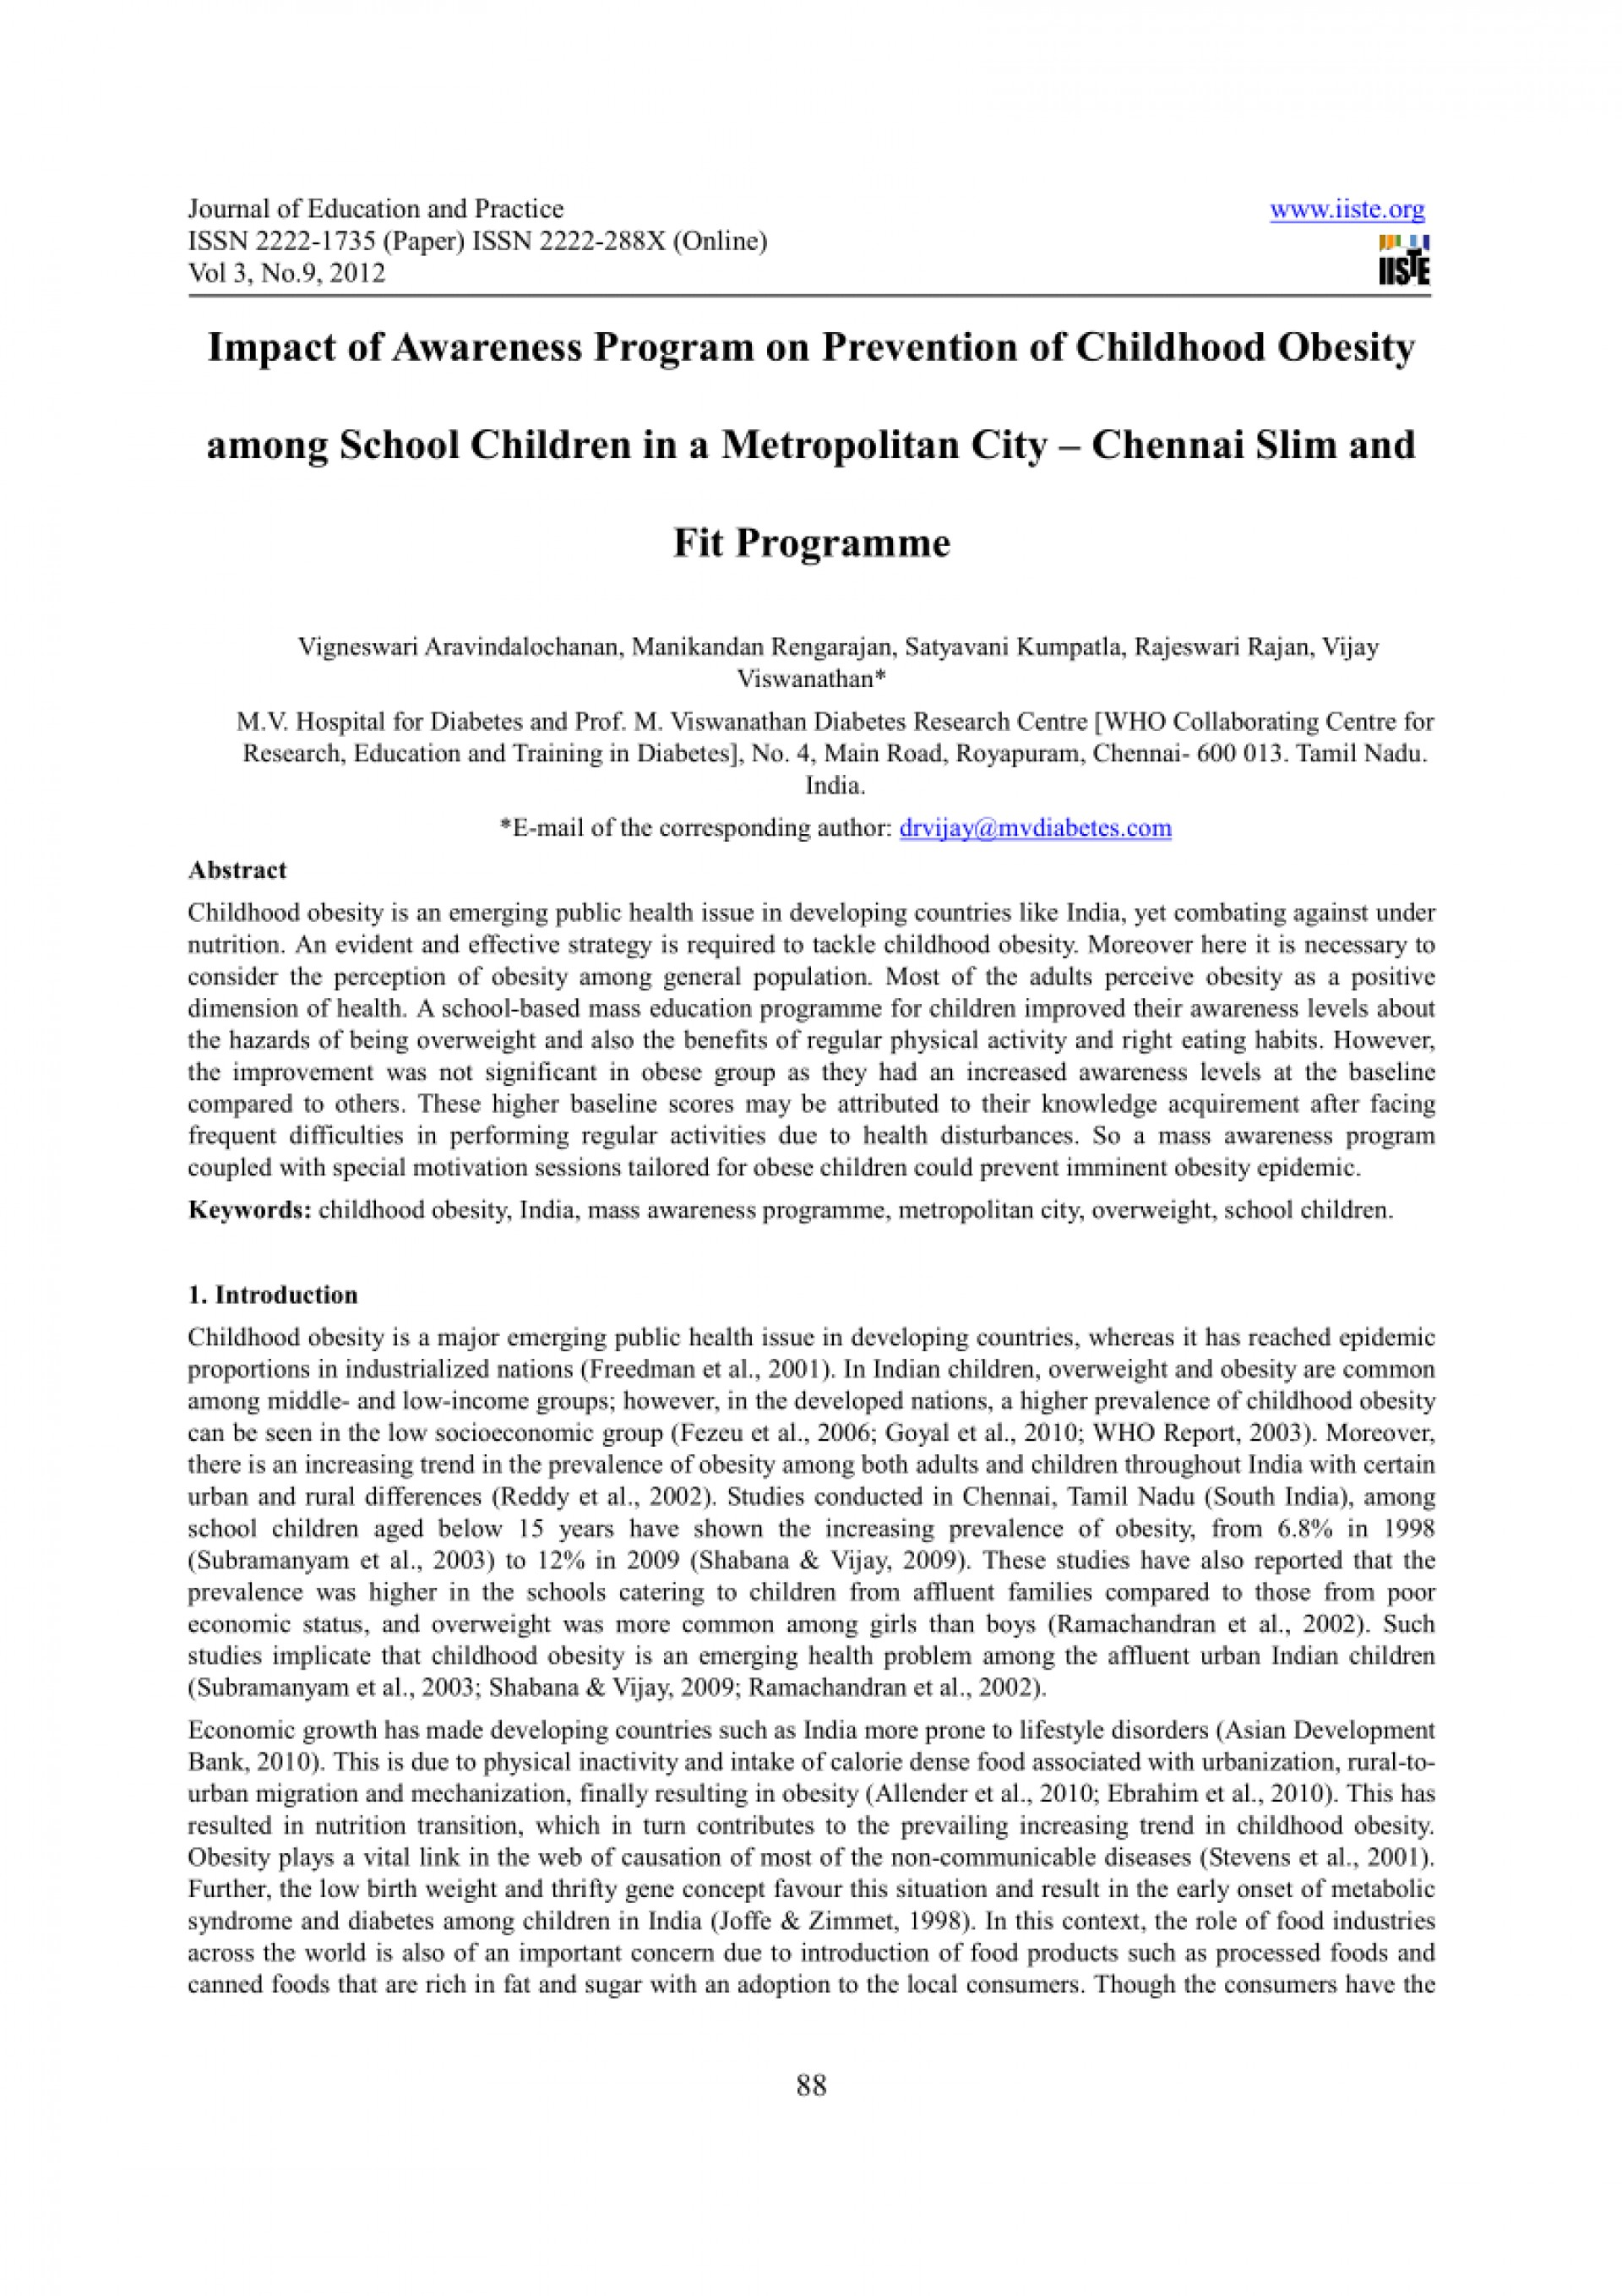 003 Childhood Obesity Research Paper Abstract Formidable 1920